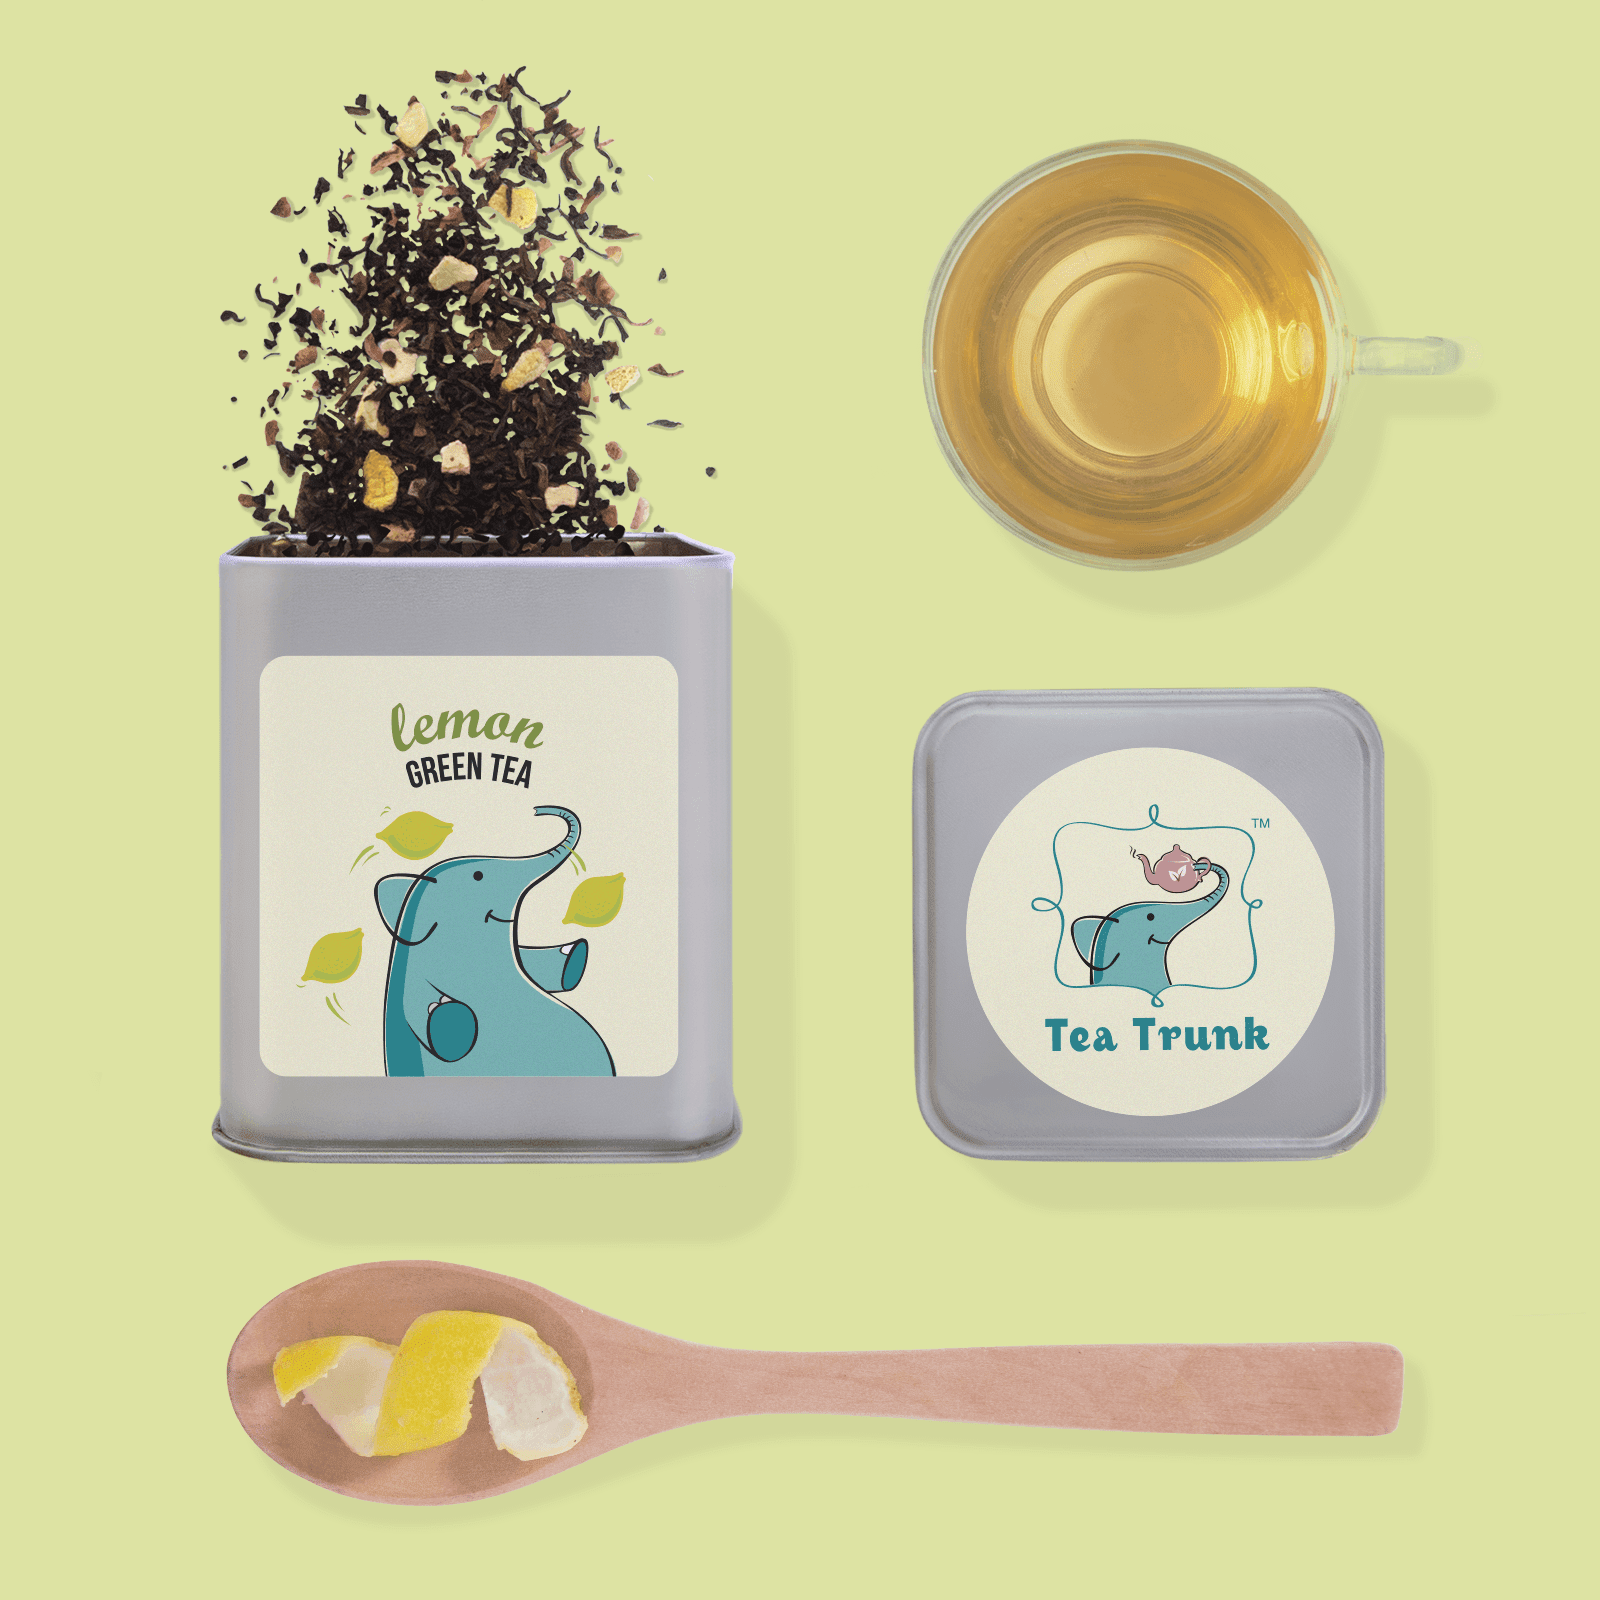 Lemon Green Tea - Tea Trunk